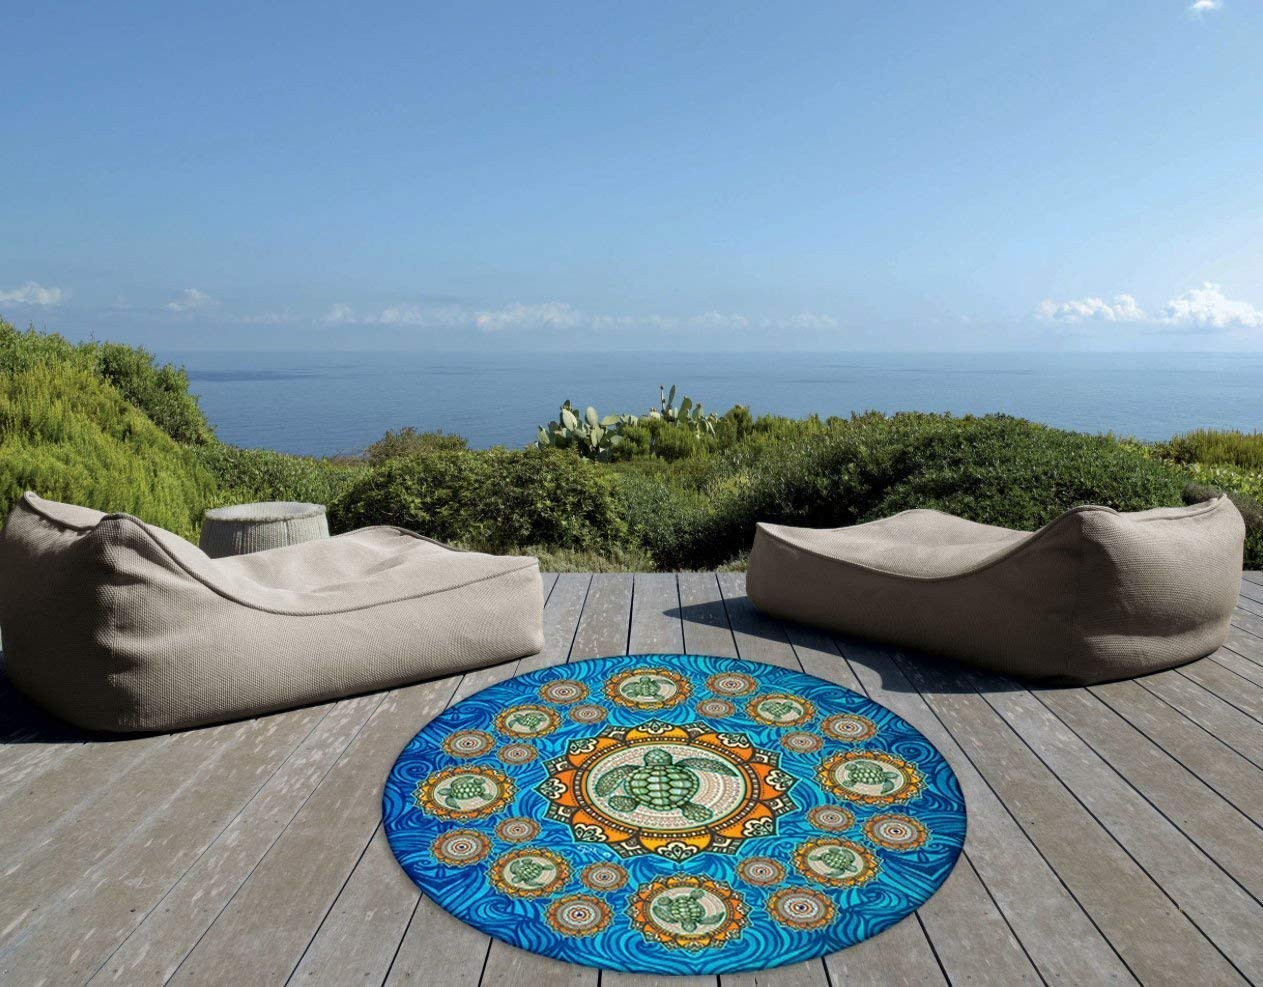 Sea Turtle Mandala Beach Large ROUND Tapestry by Artist Dan Morris